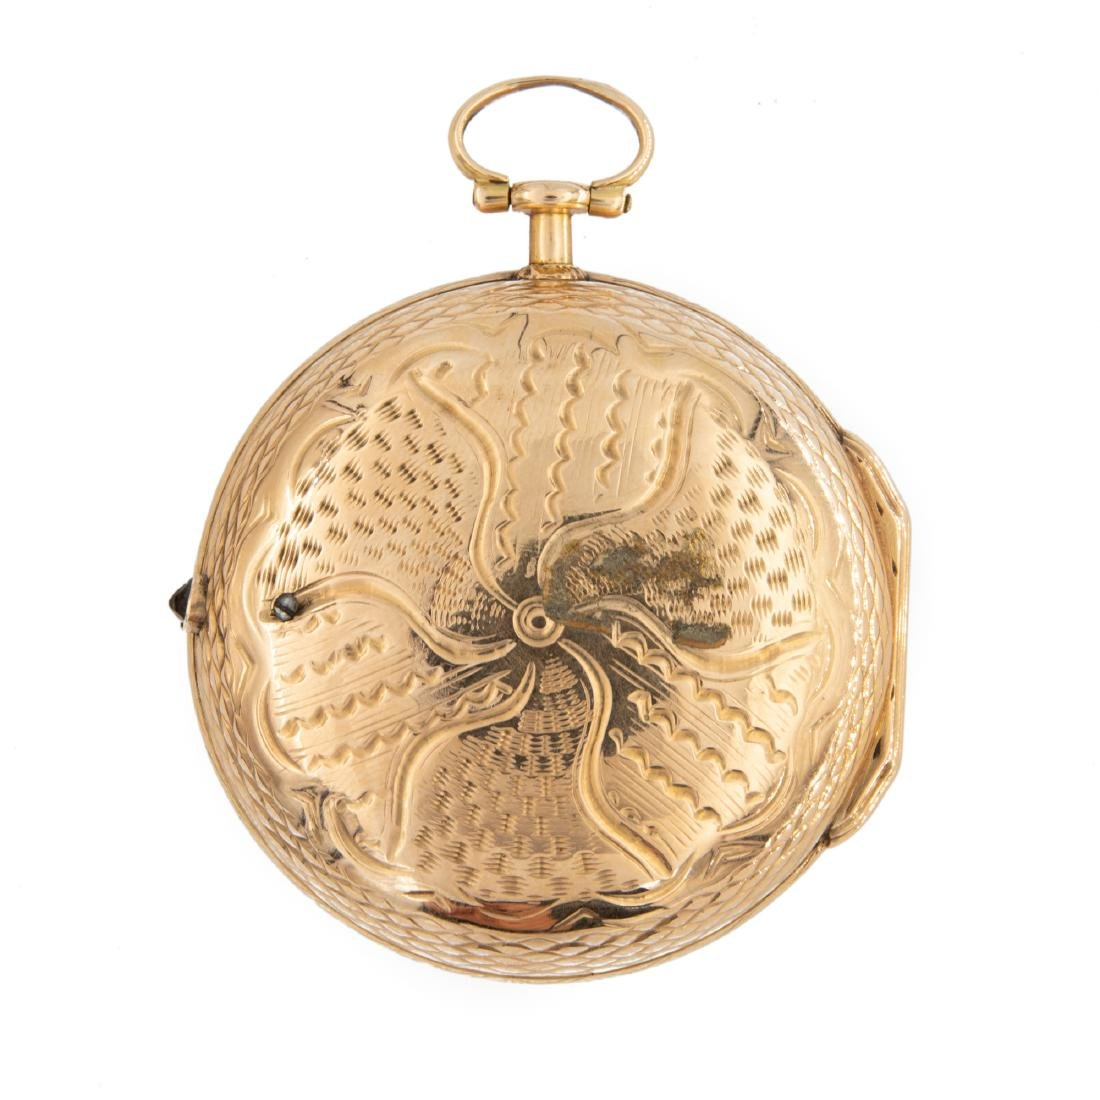 ROSE GOLD POCKET WATCH SIGNED MELLY, LOUIS XVI - 3